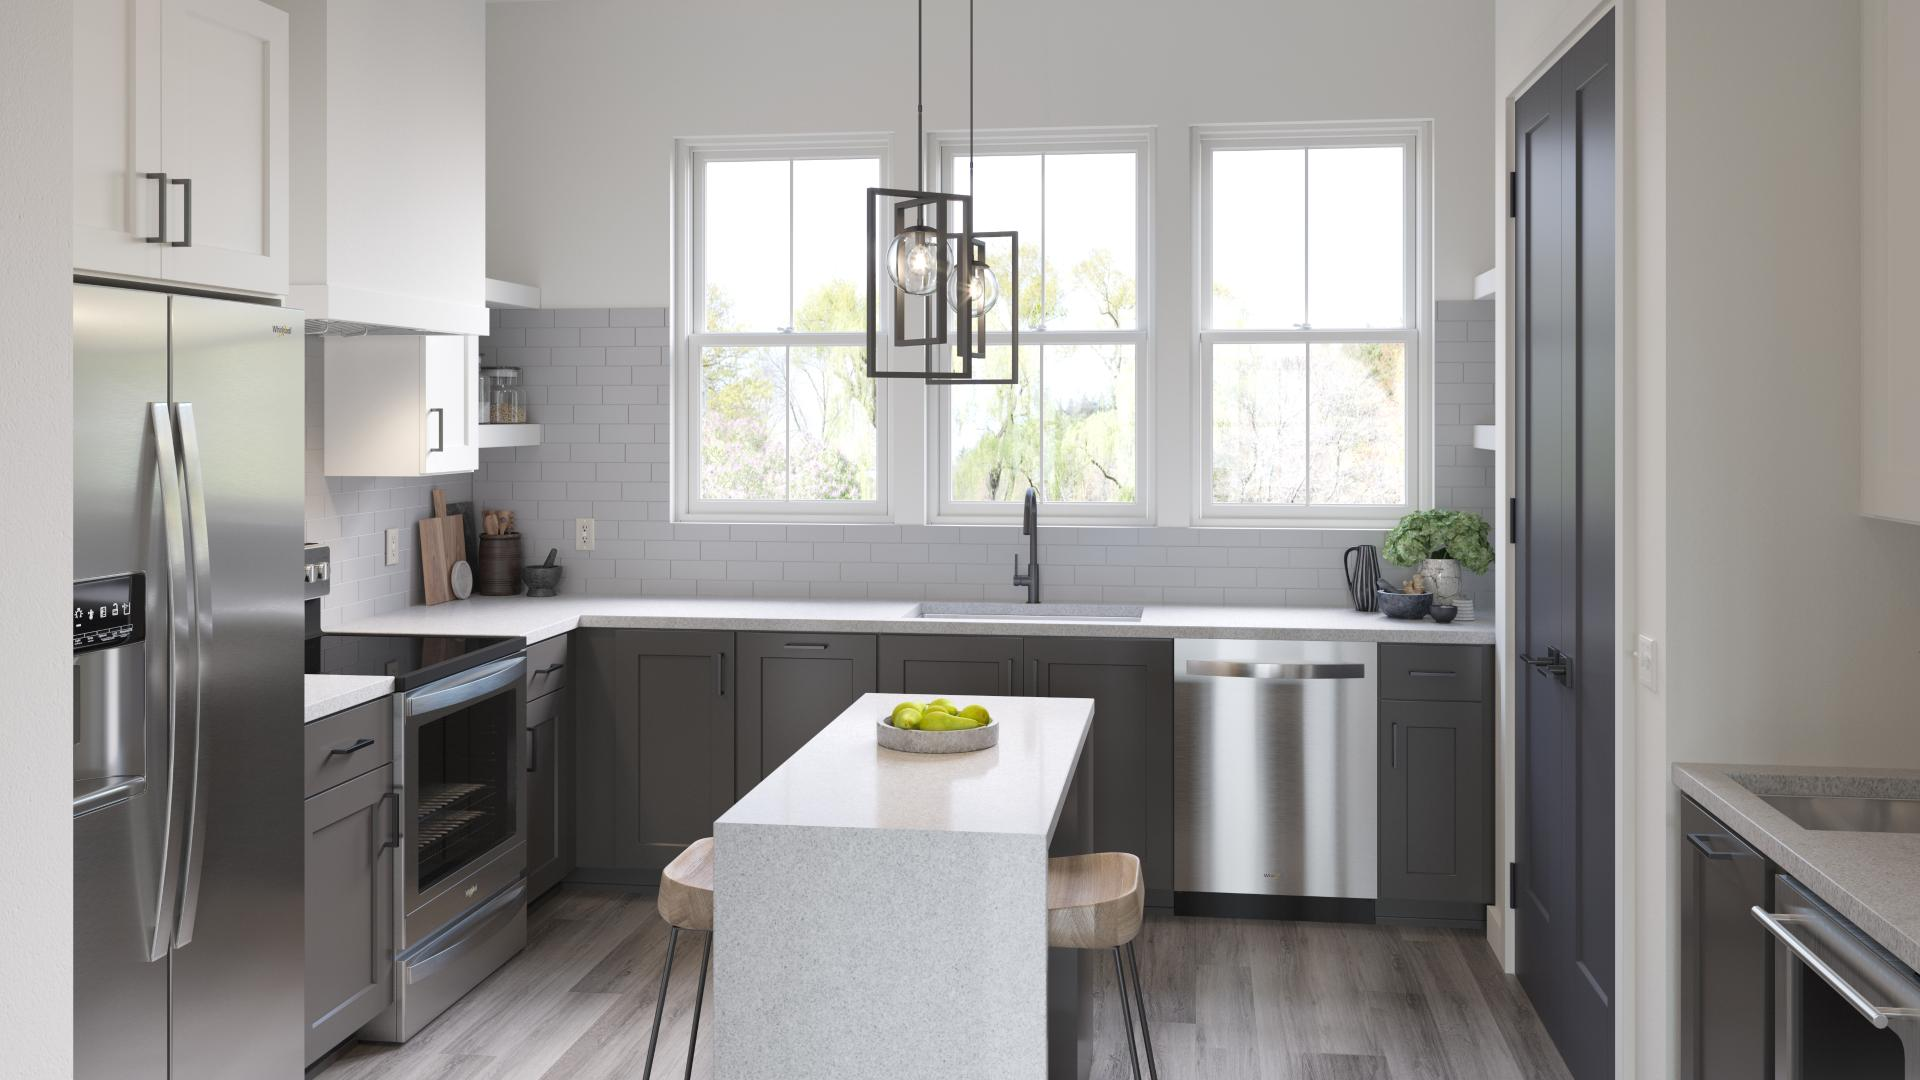 State-of-the-art gourmet kitchens